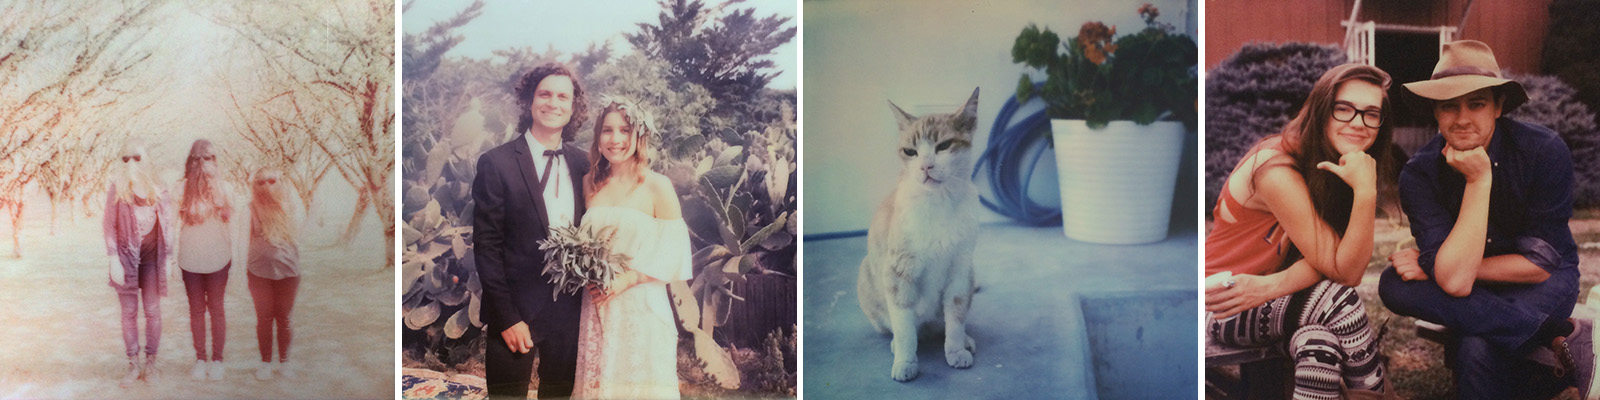 MiNT SLR670m Review - Sample Polaroids shot with the Time Machine